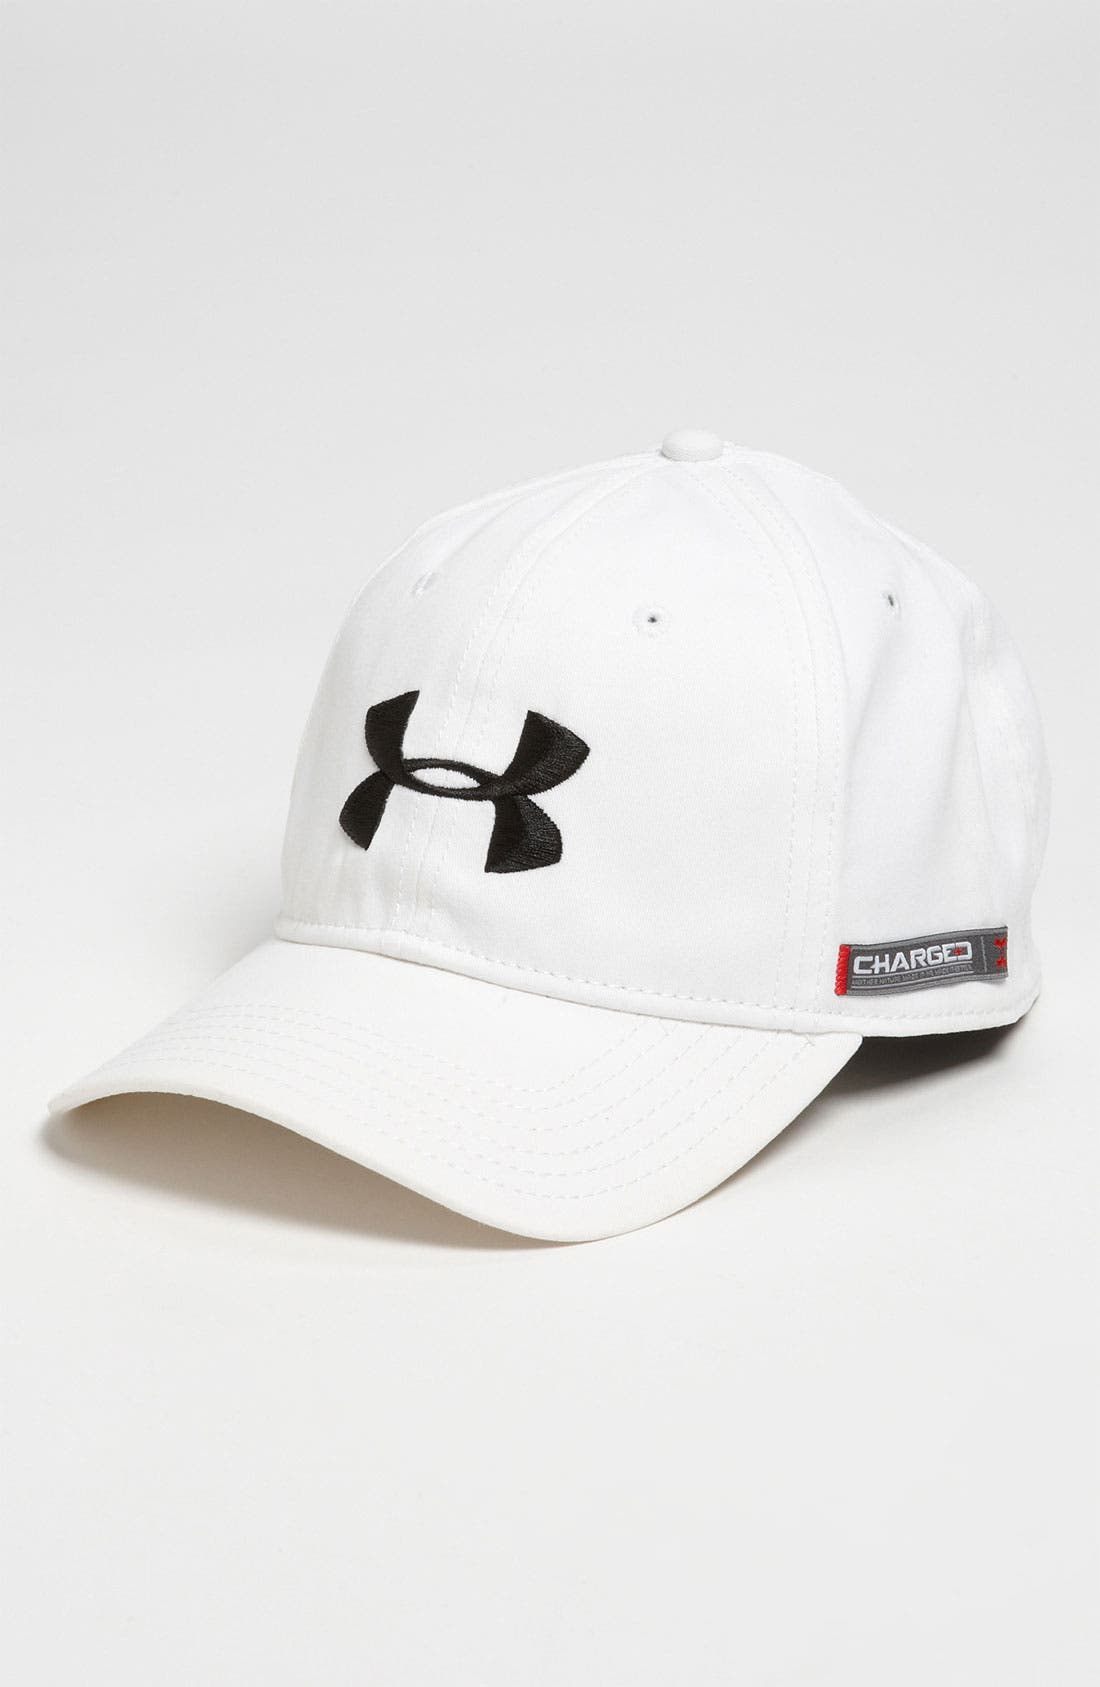 Main Image - Under Armour 'Charged' Adjustable Baseball Cap